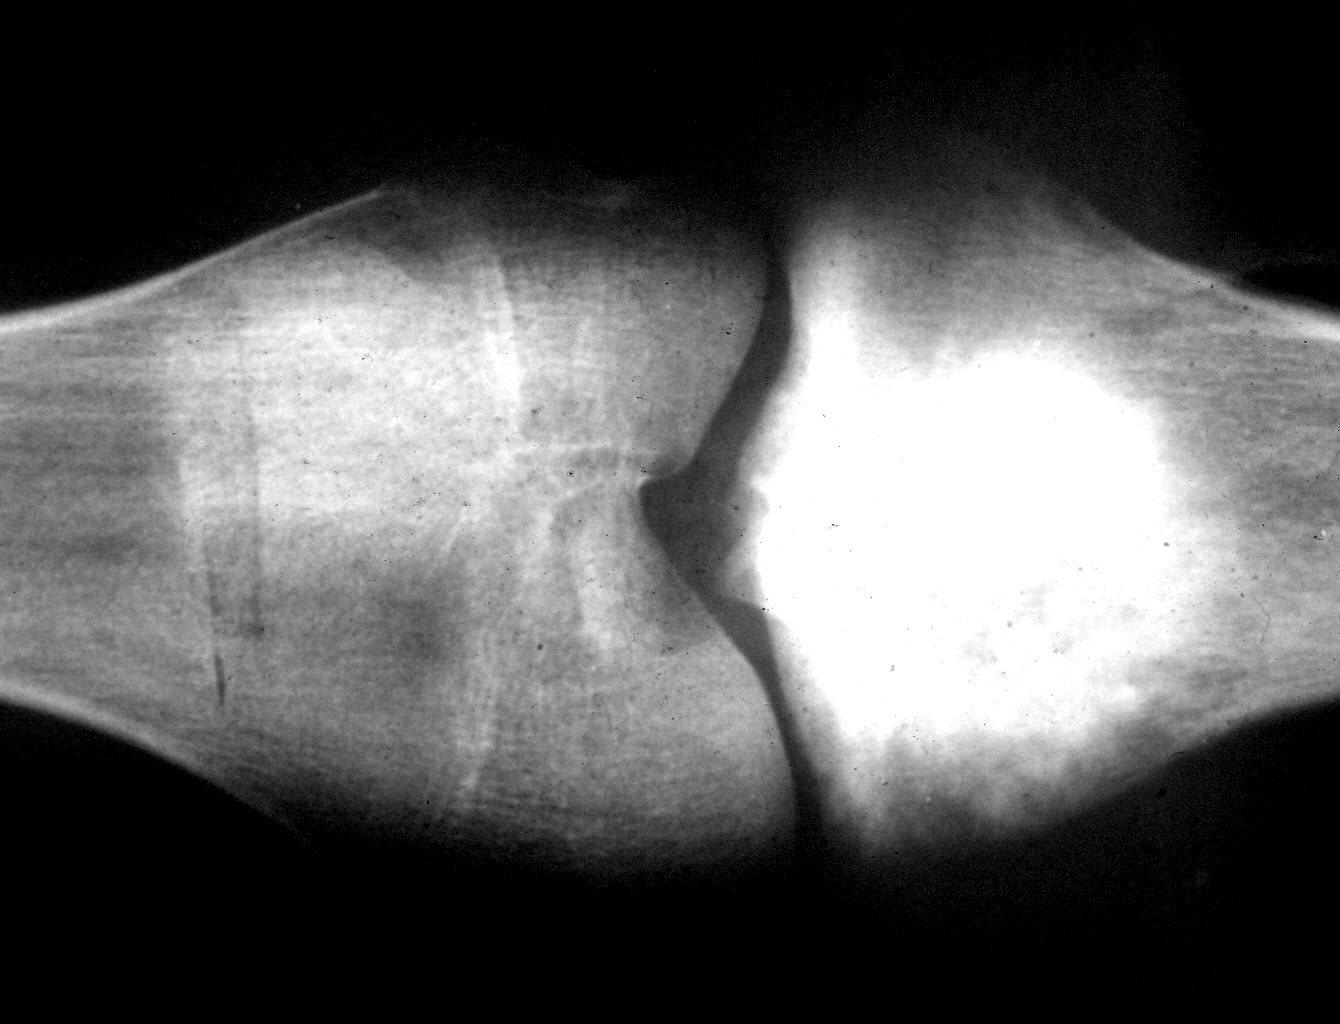 Blastic type  xray - contributed by Dr  Mark R  WickOsteosarcoma X Ray